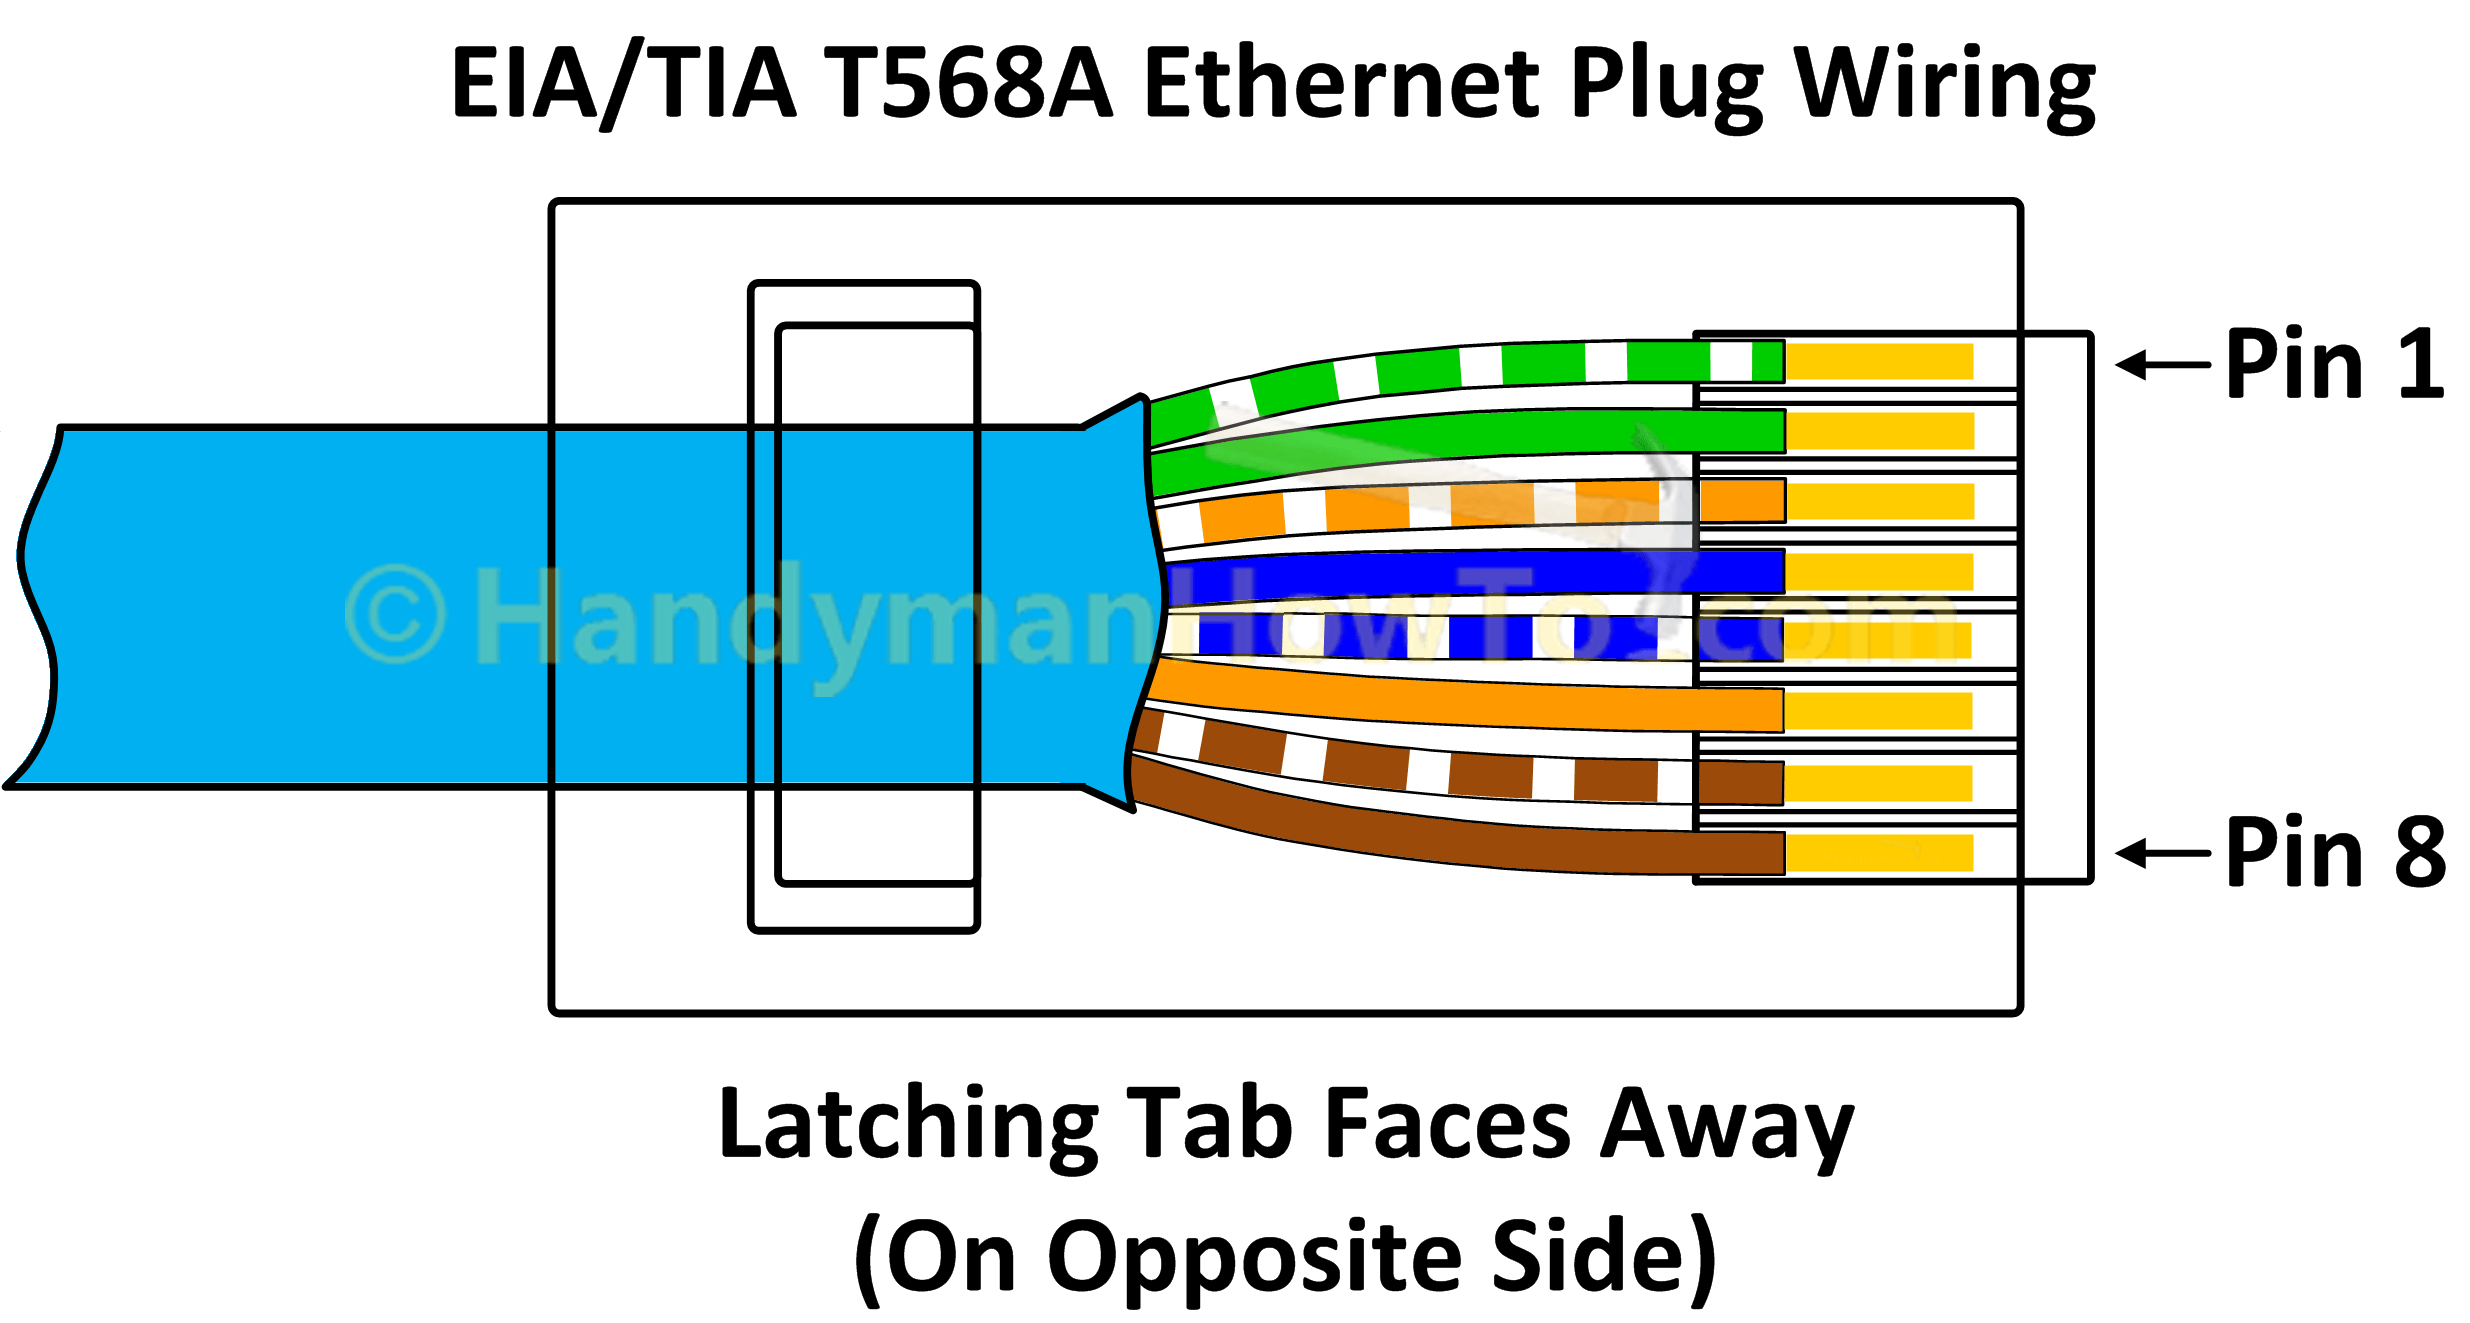 Cat 6 Ethernet Cable Diagram - Wiring Diagram Name - Ethernet Wiring Diagram